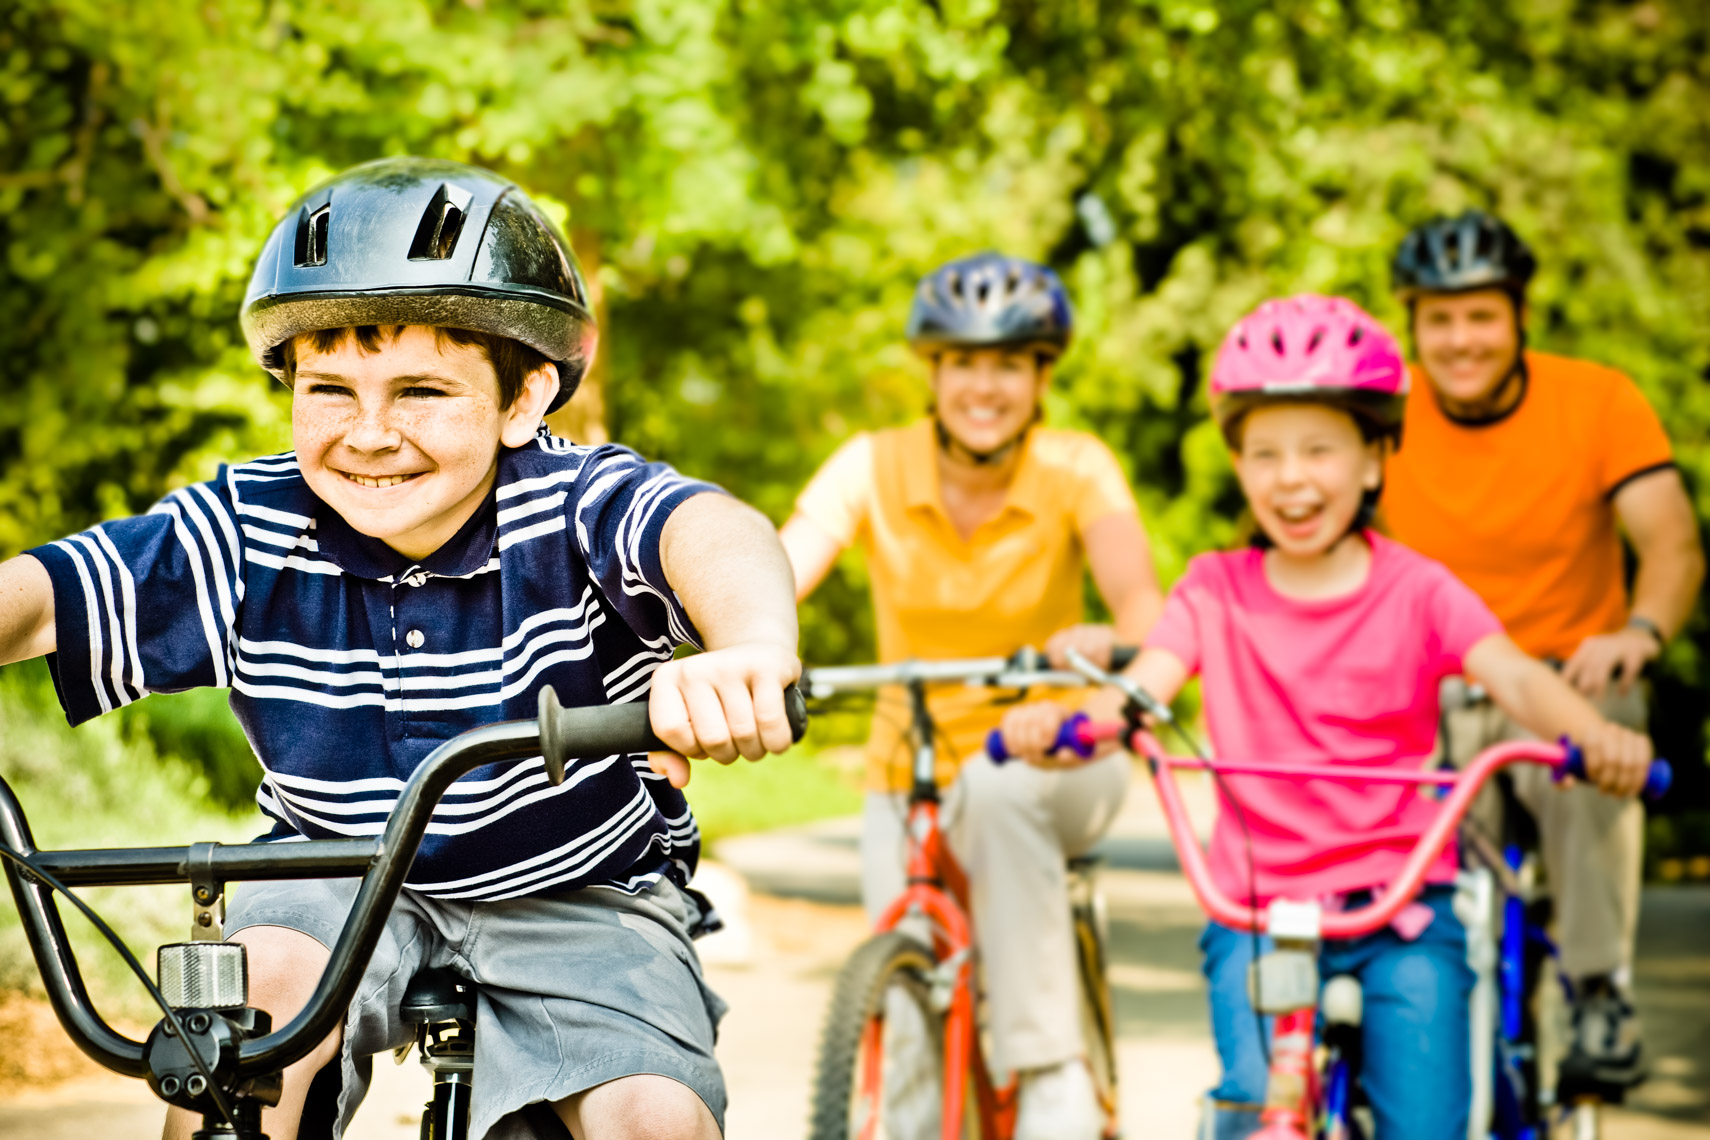 Los Angeles Photographer | Dana Hursey Photography | Healthcare Photography | Family Bike Ride